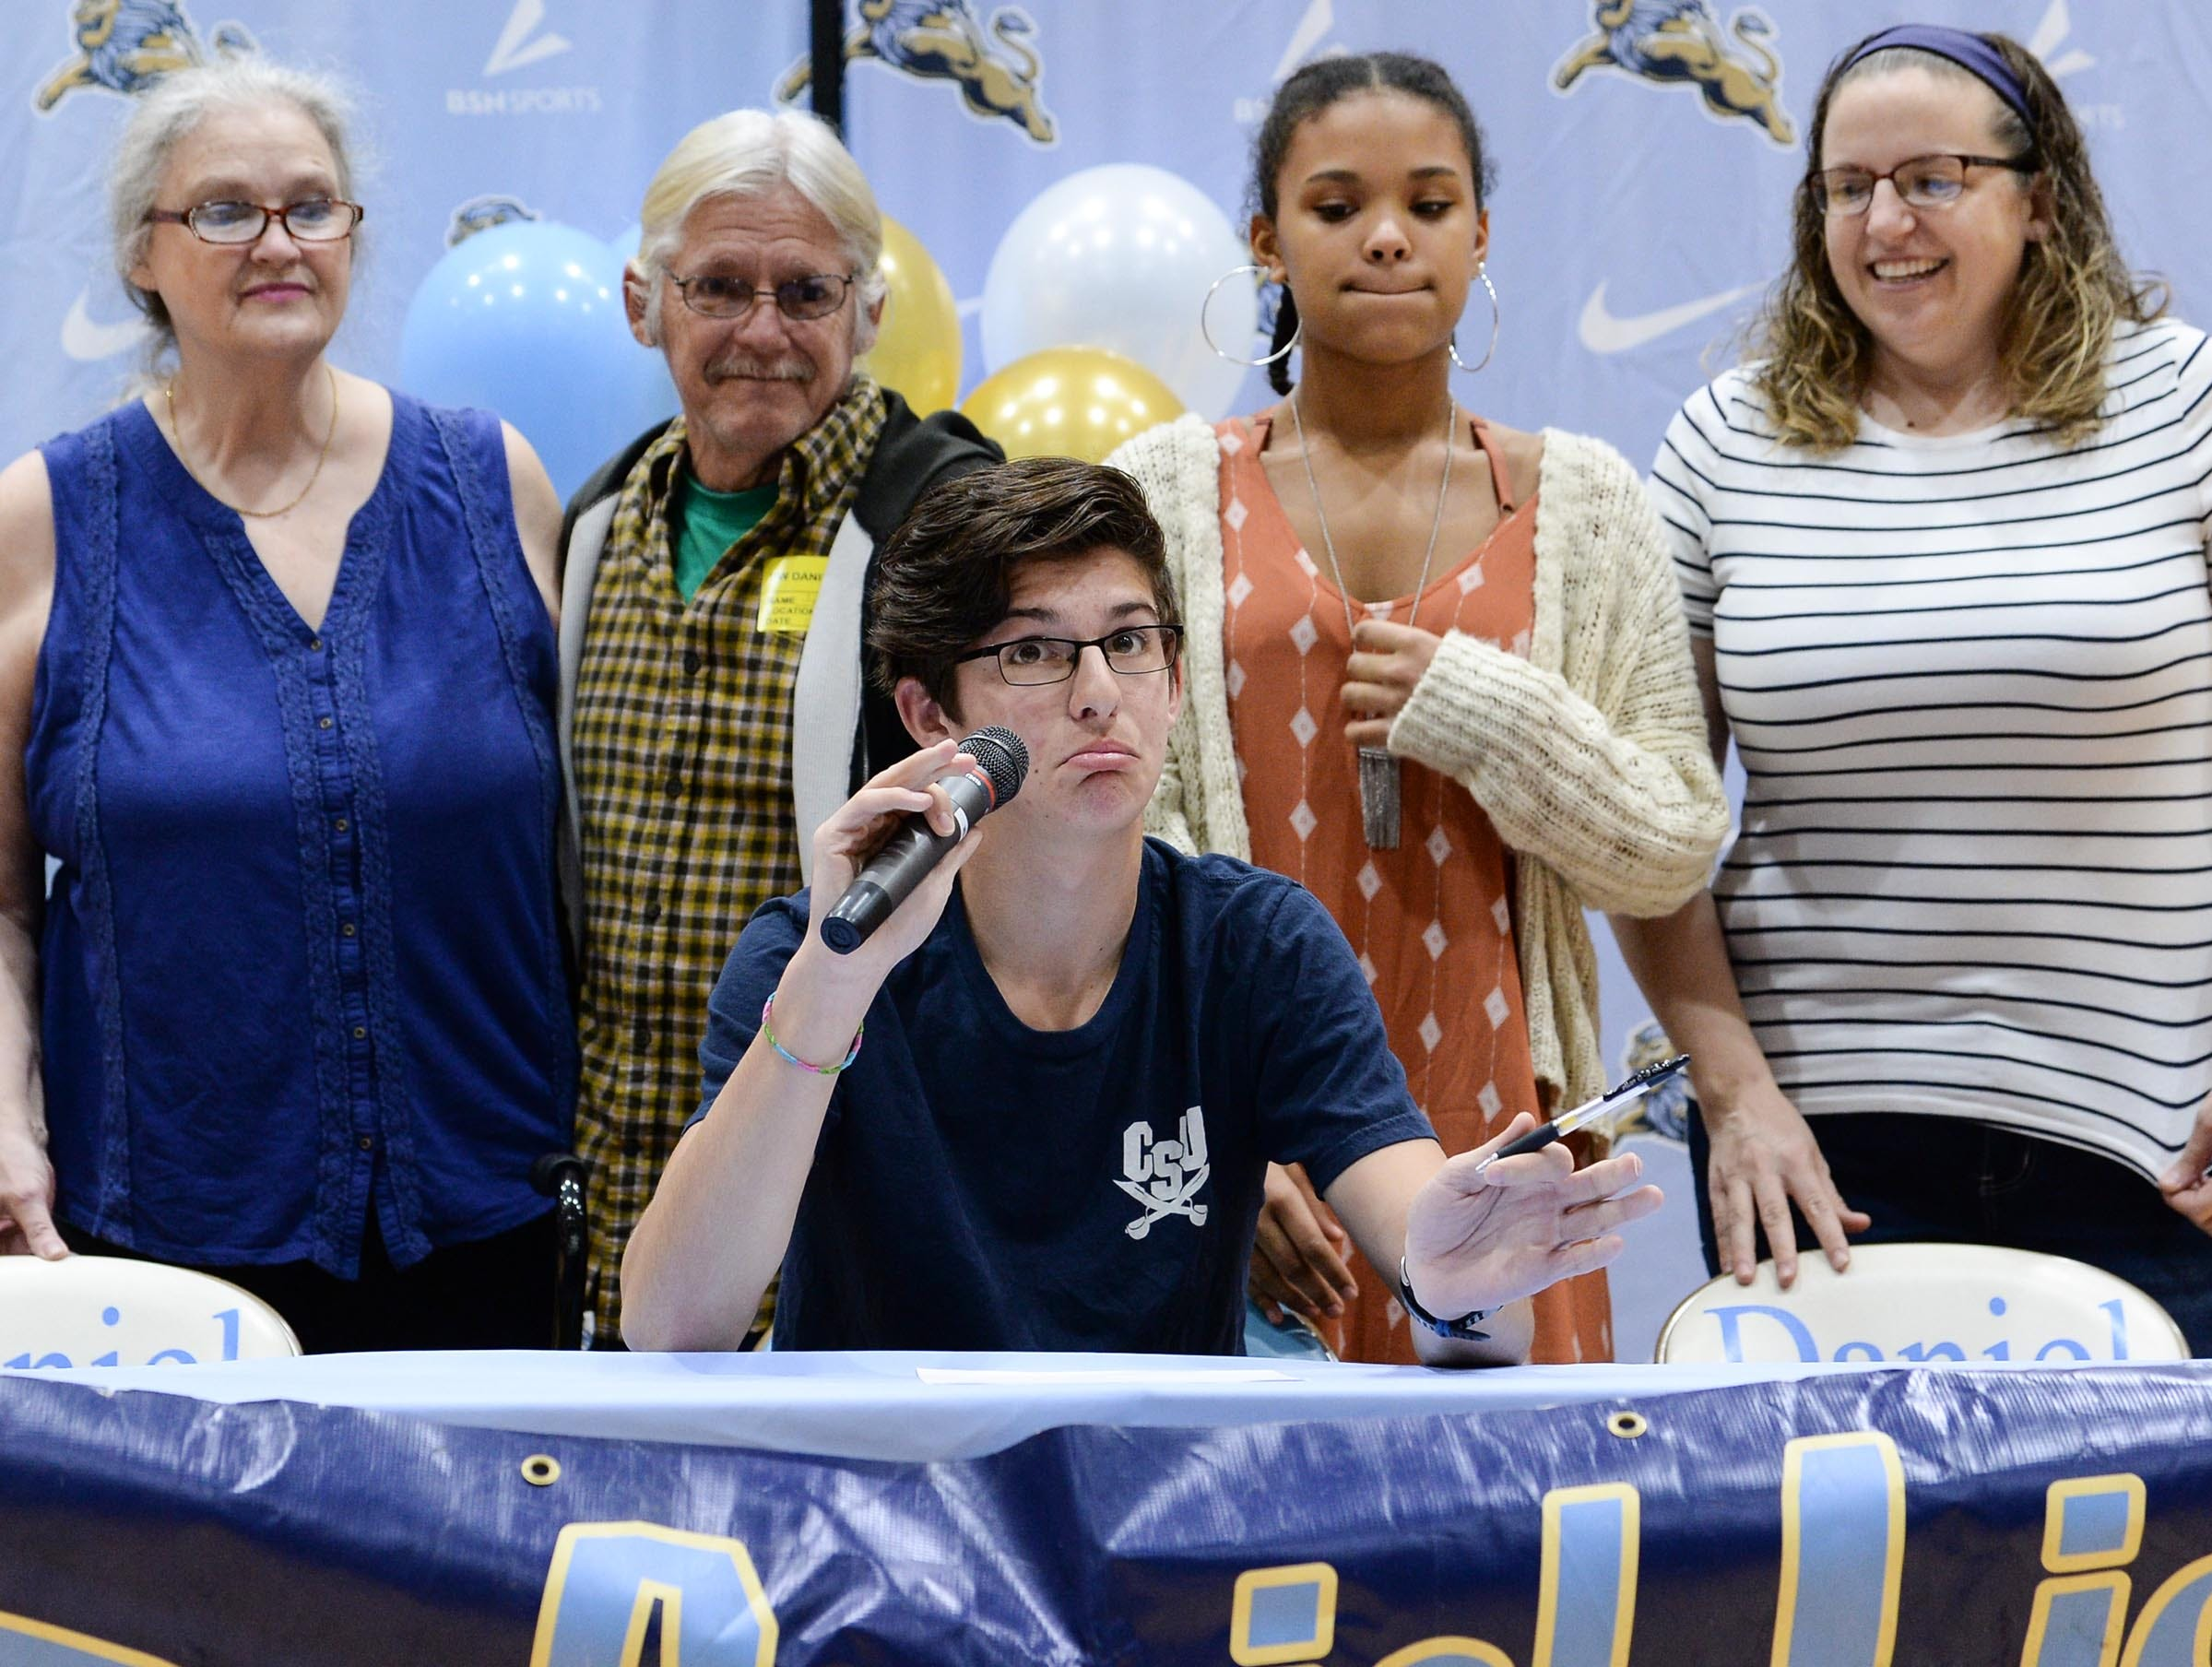 Charleston Southern University cross country signee Alex Zangara makes a speech during National Letter of Intent signing day at D.W. Daniel High School in Central Wednesday.